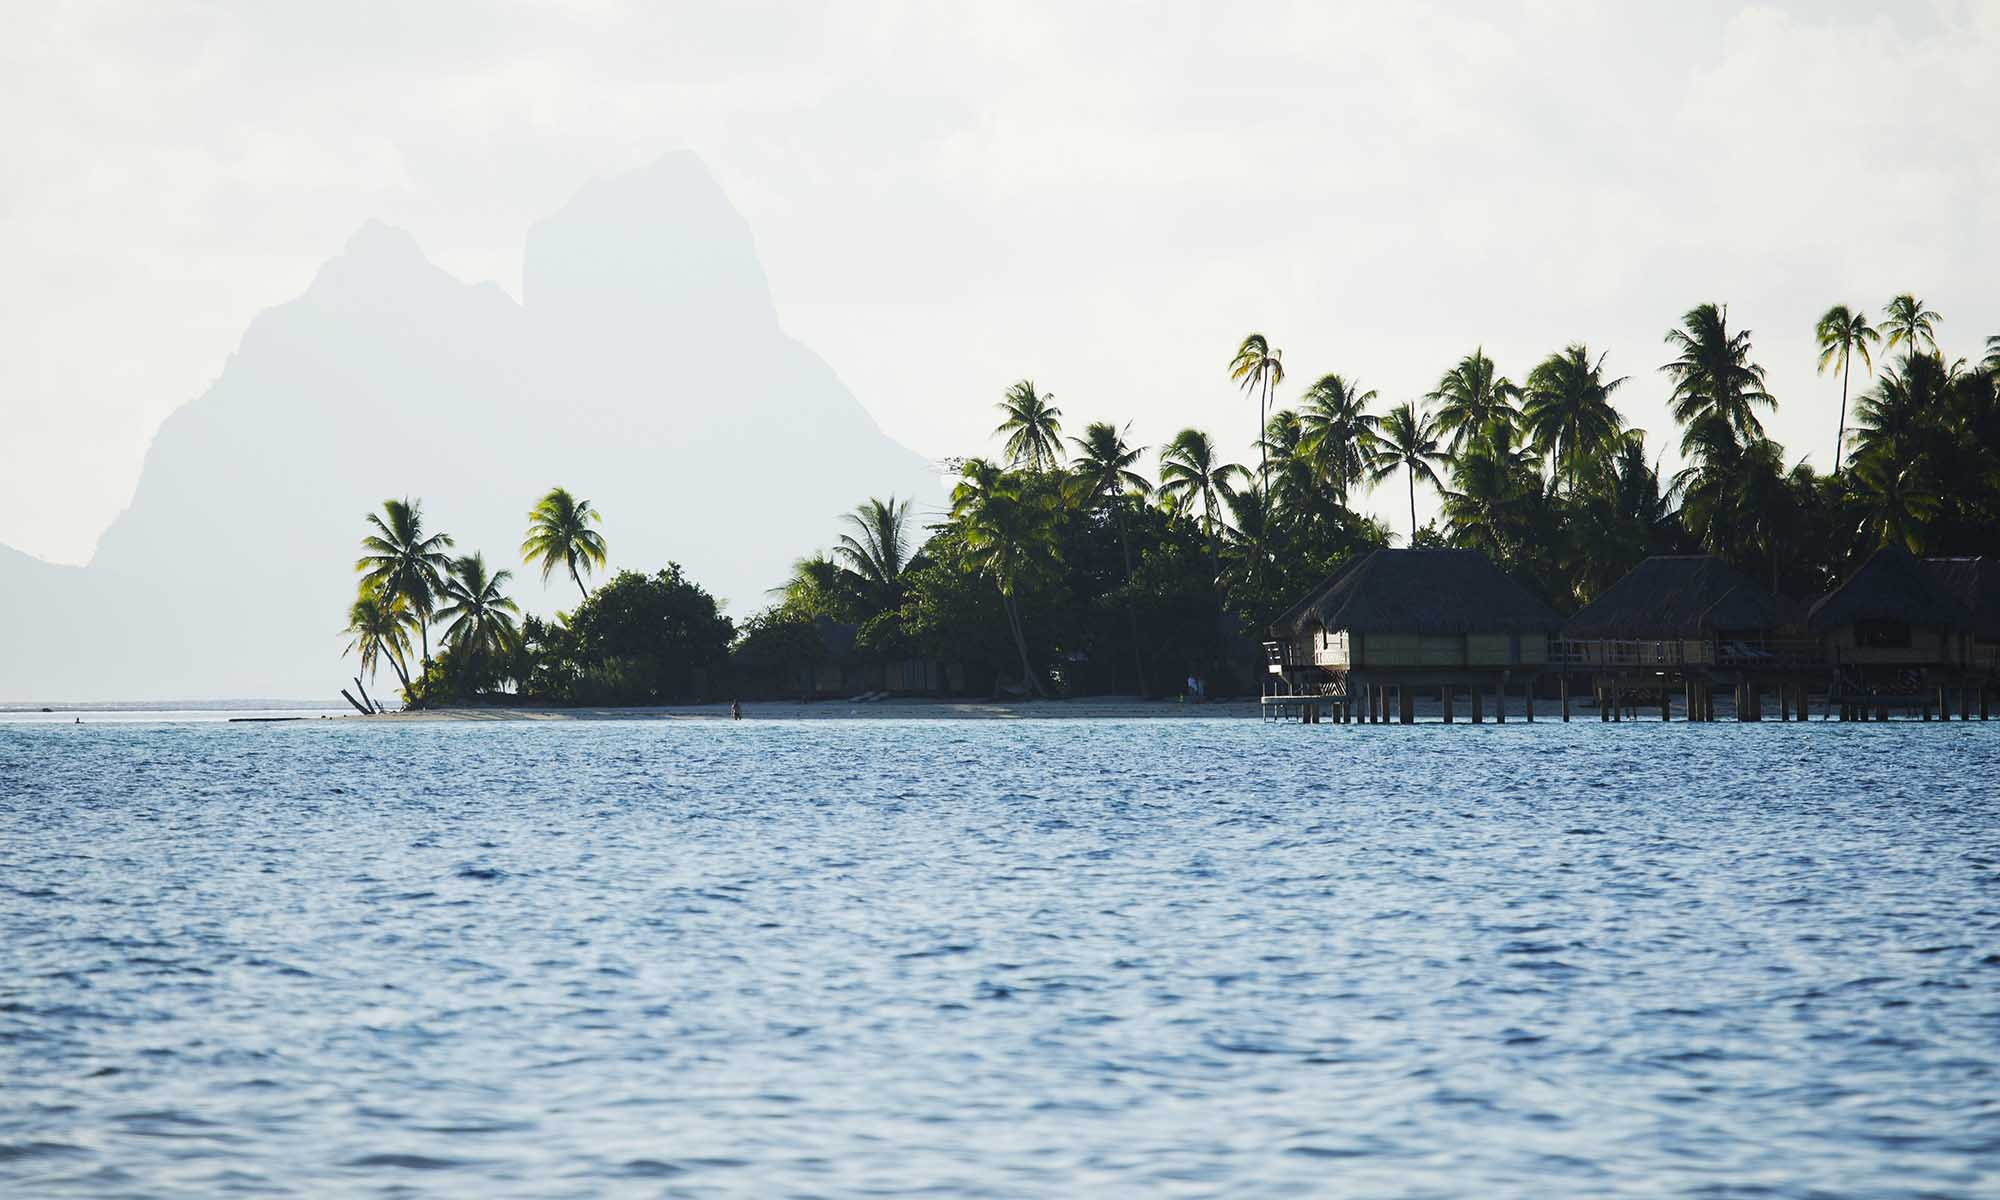 Le Taha'a Island Resort Overwater Bungalows with Bora Bora's Mt Otemanu in the Distance